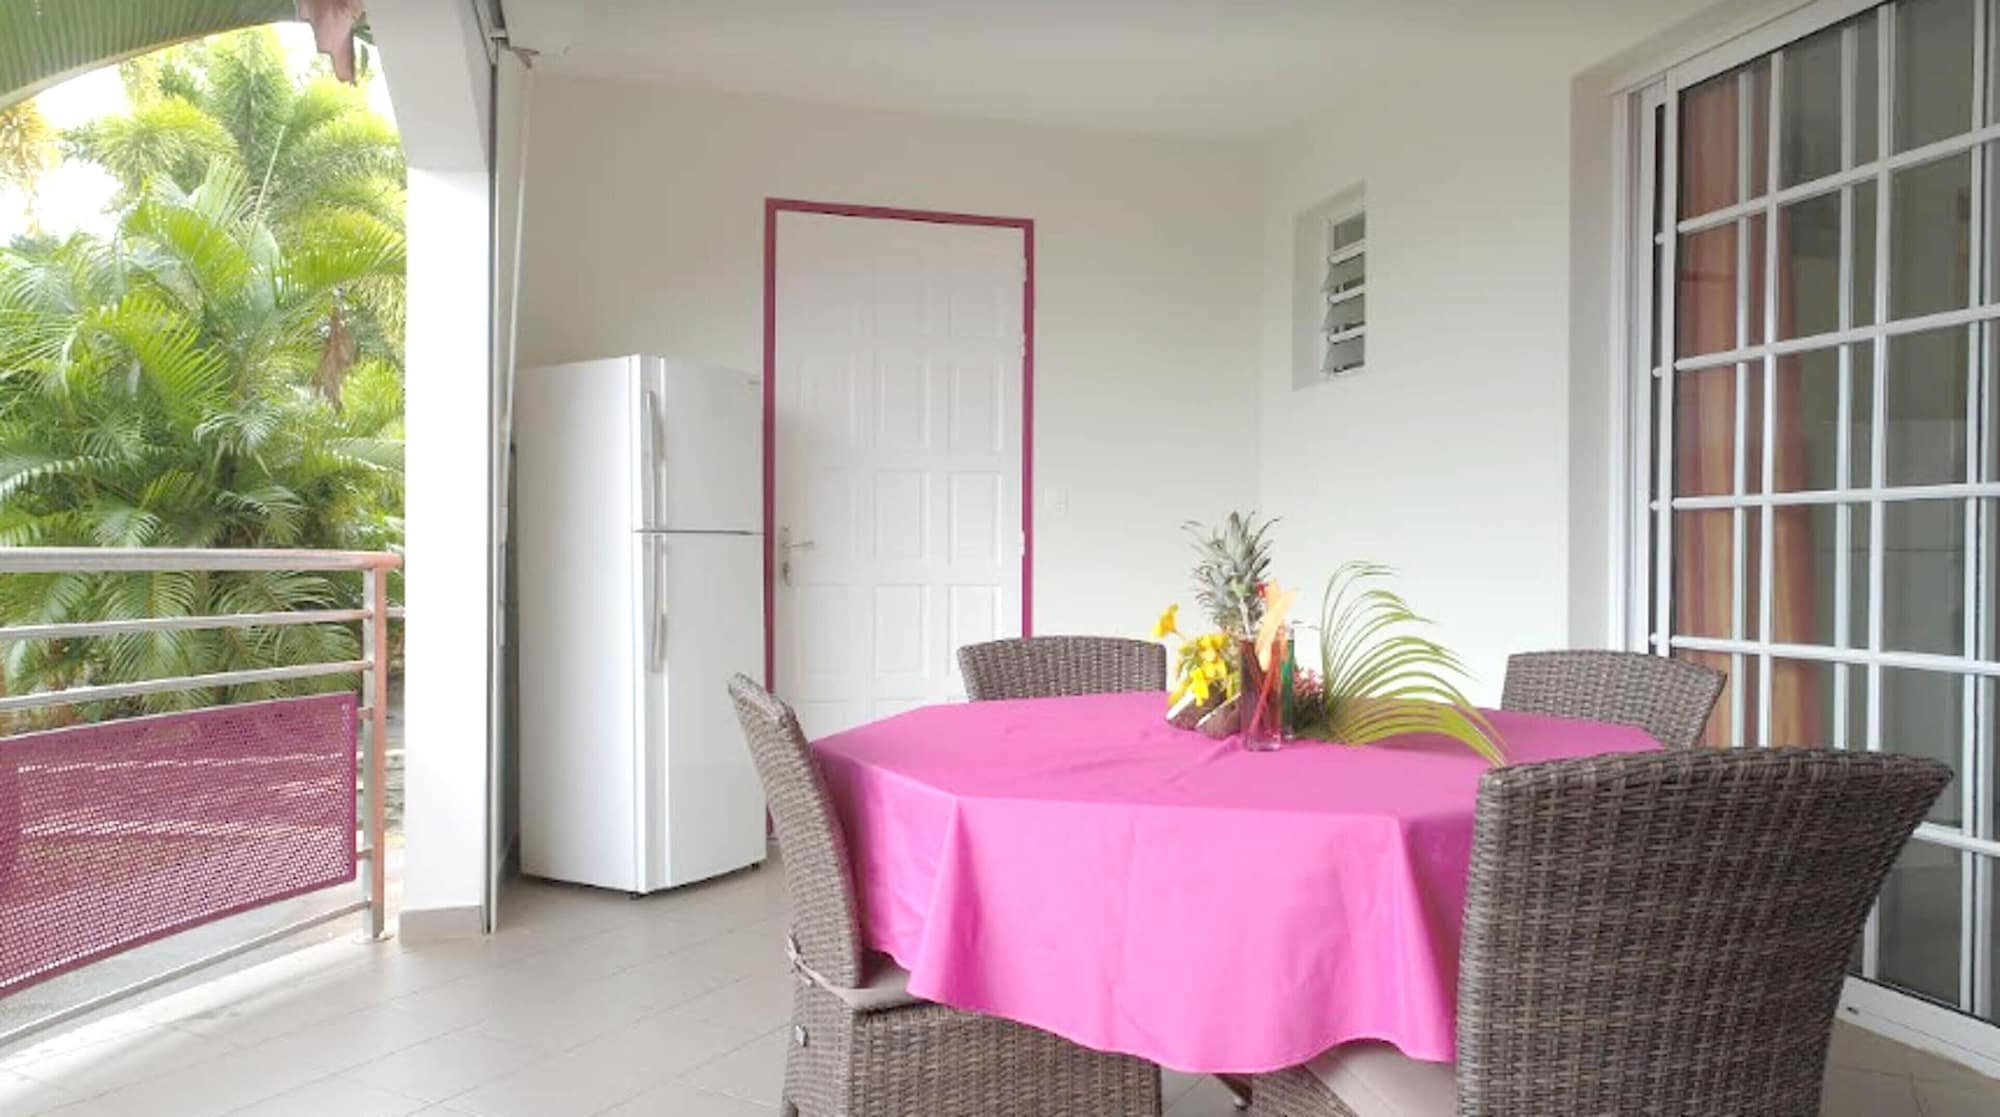 Apartment With one Bedroom in Sainte-luce, With Pool Access, Furnished, Basse-Pointe